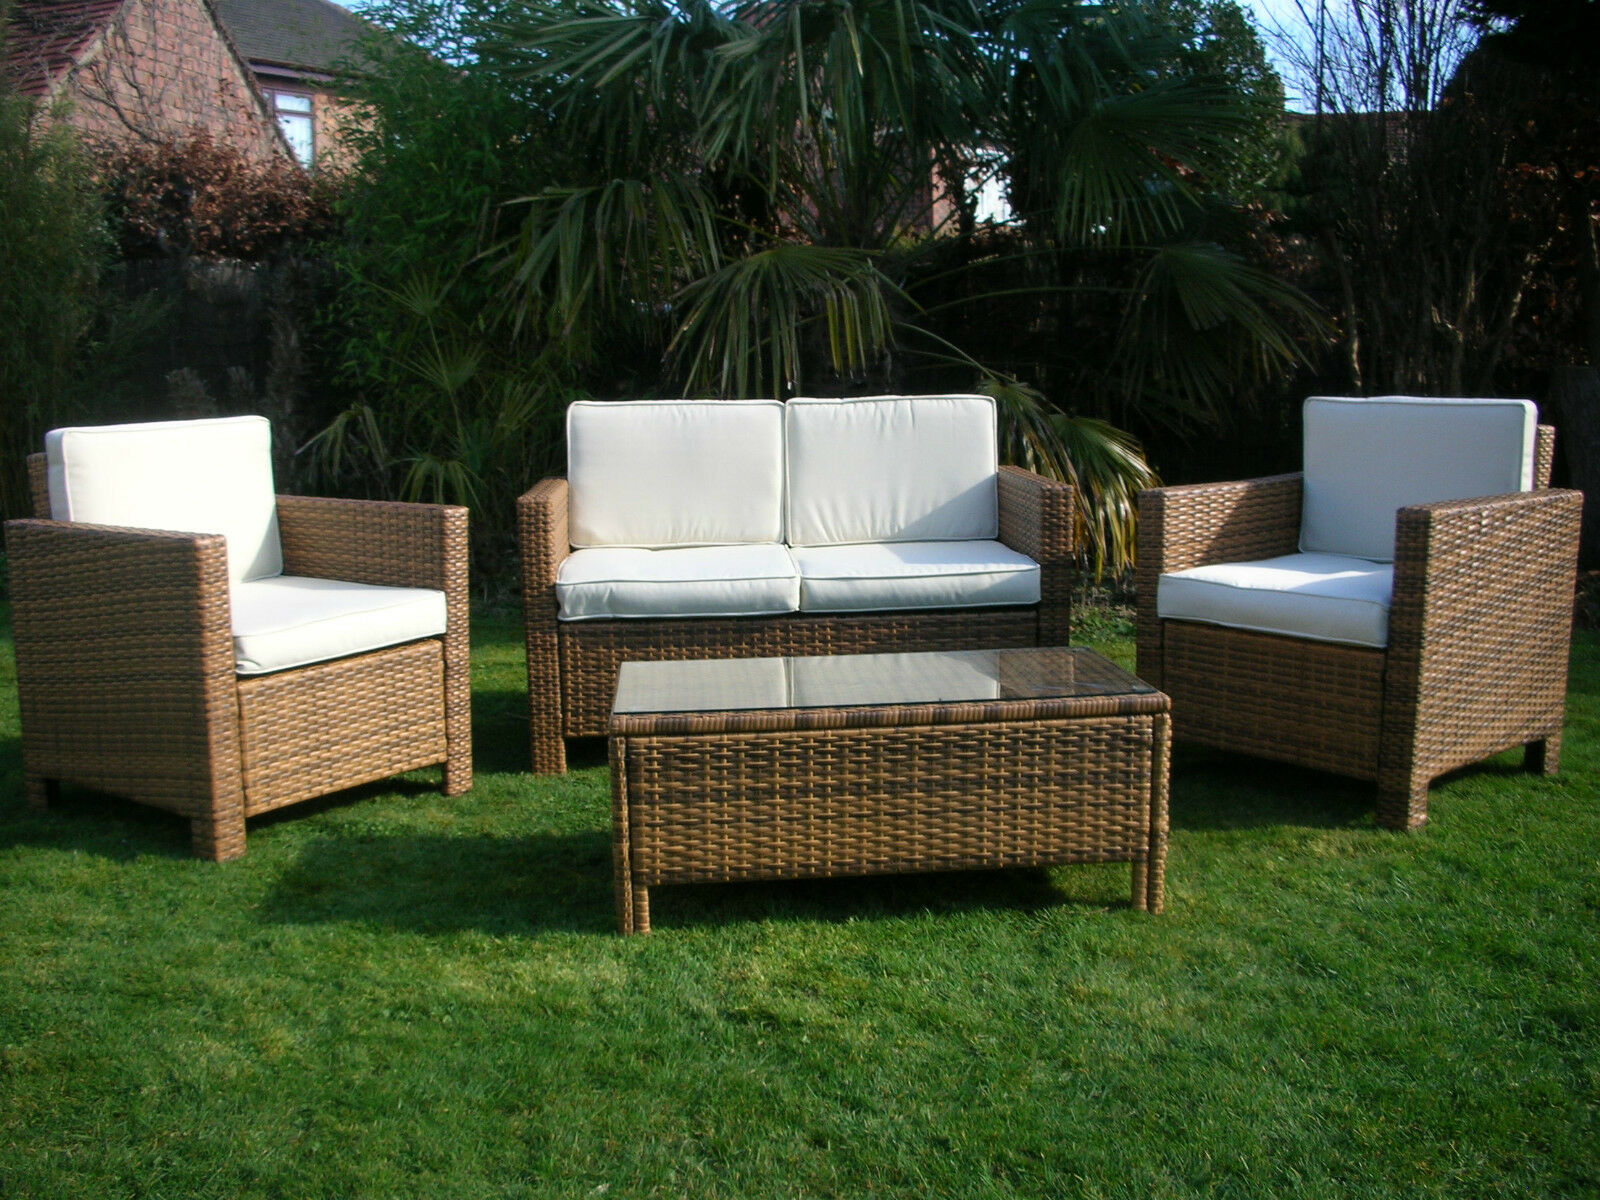 Rattan Outdoor Chairs New Garden Rattan Wicker Outdoor Conservatory Furniture